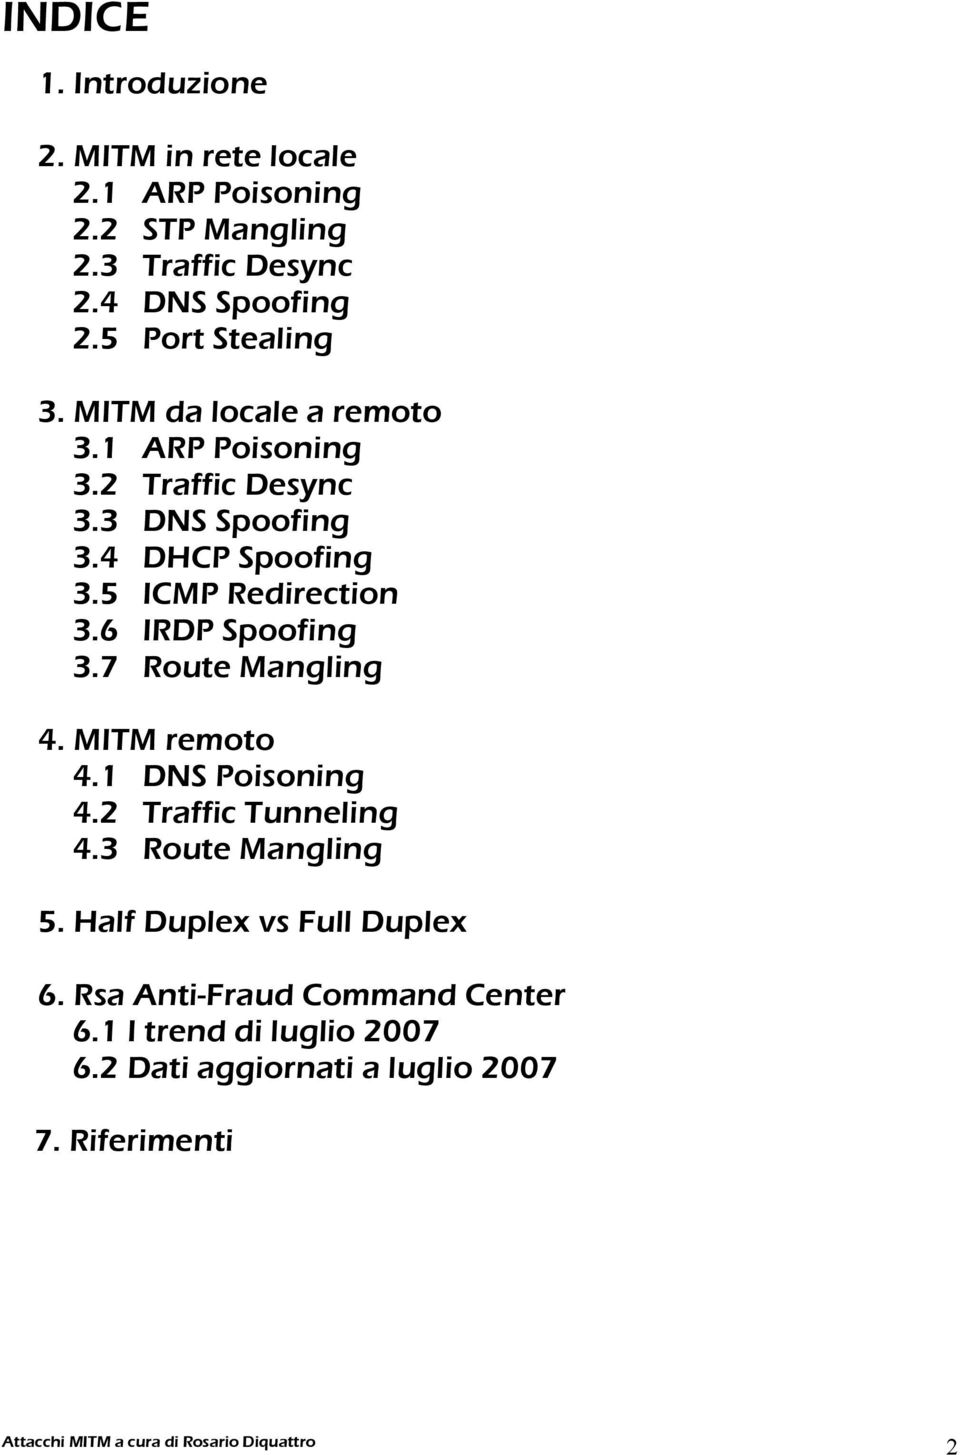 5 ICMP Redirection 3.6 IRDP Spoofing 3.7 Route Mangling 4. MITM remoto 4.1 DNS Poisoning 4.2 Traffic Tunneling 4.